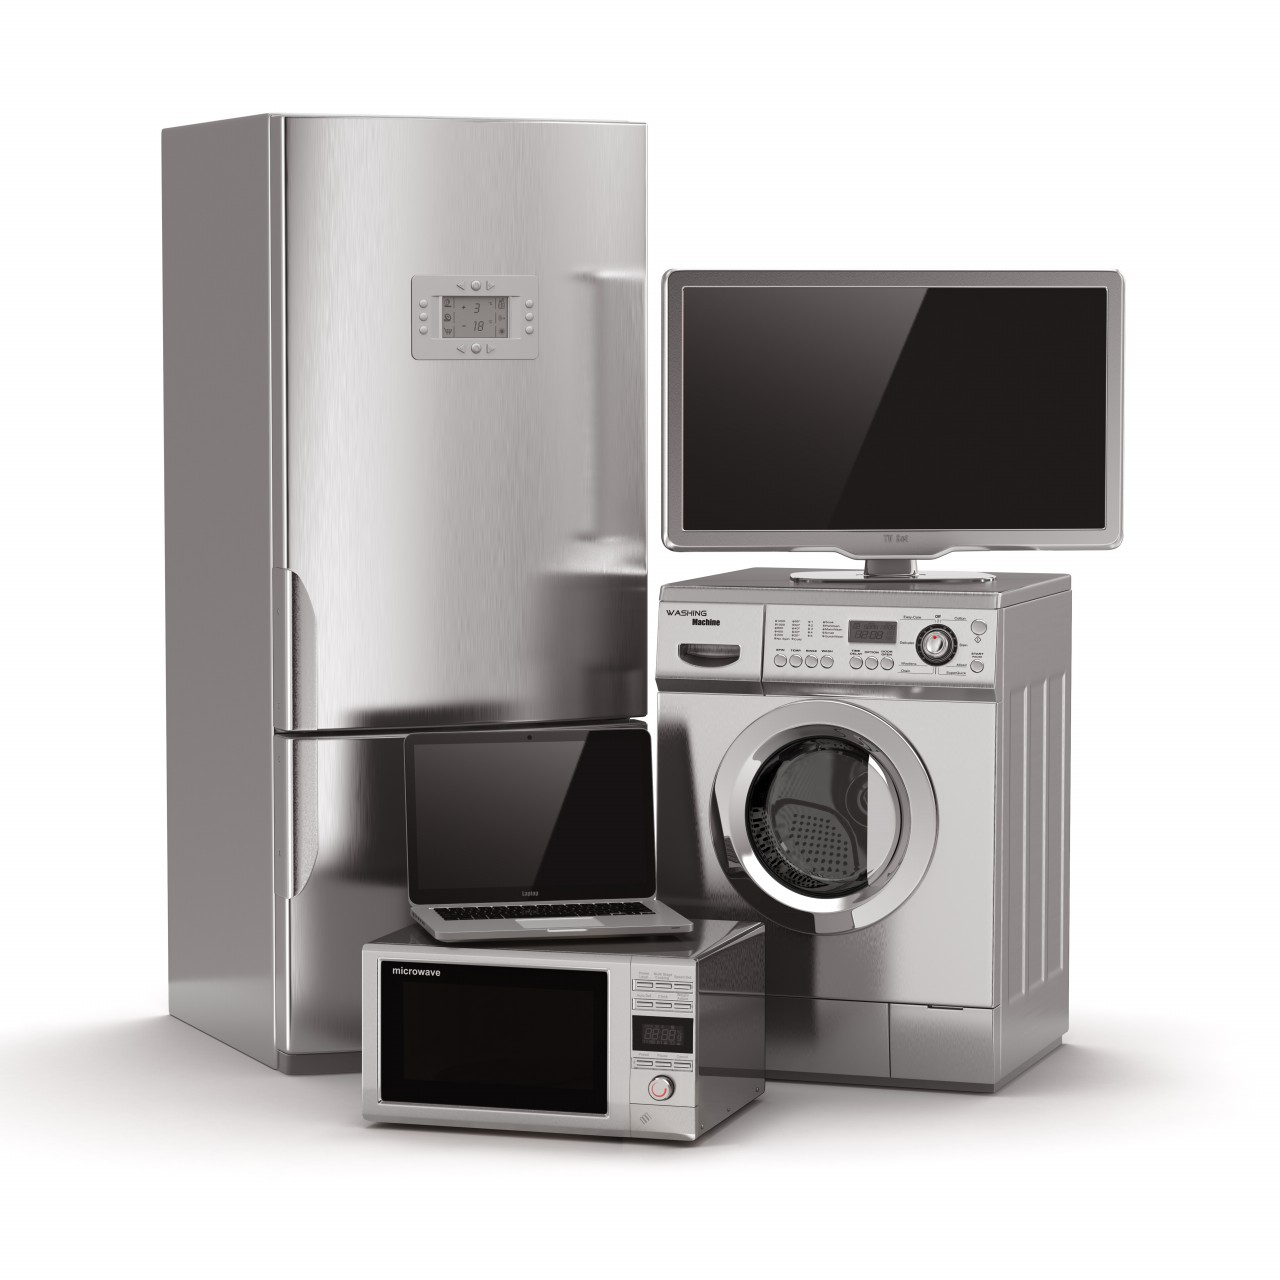 Household Appliances! All Your Needs Under One Roof